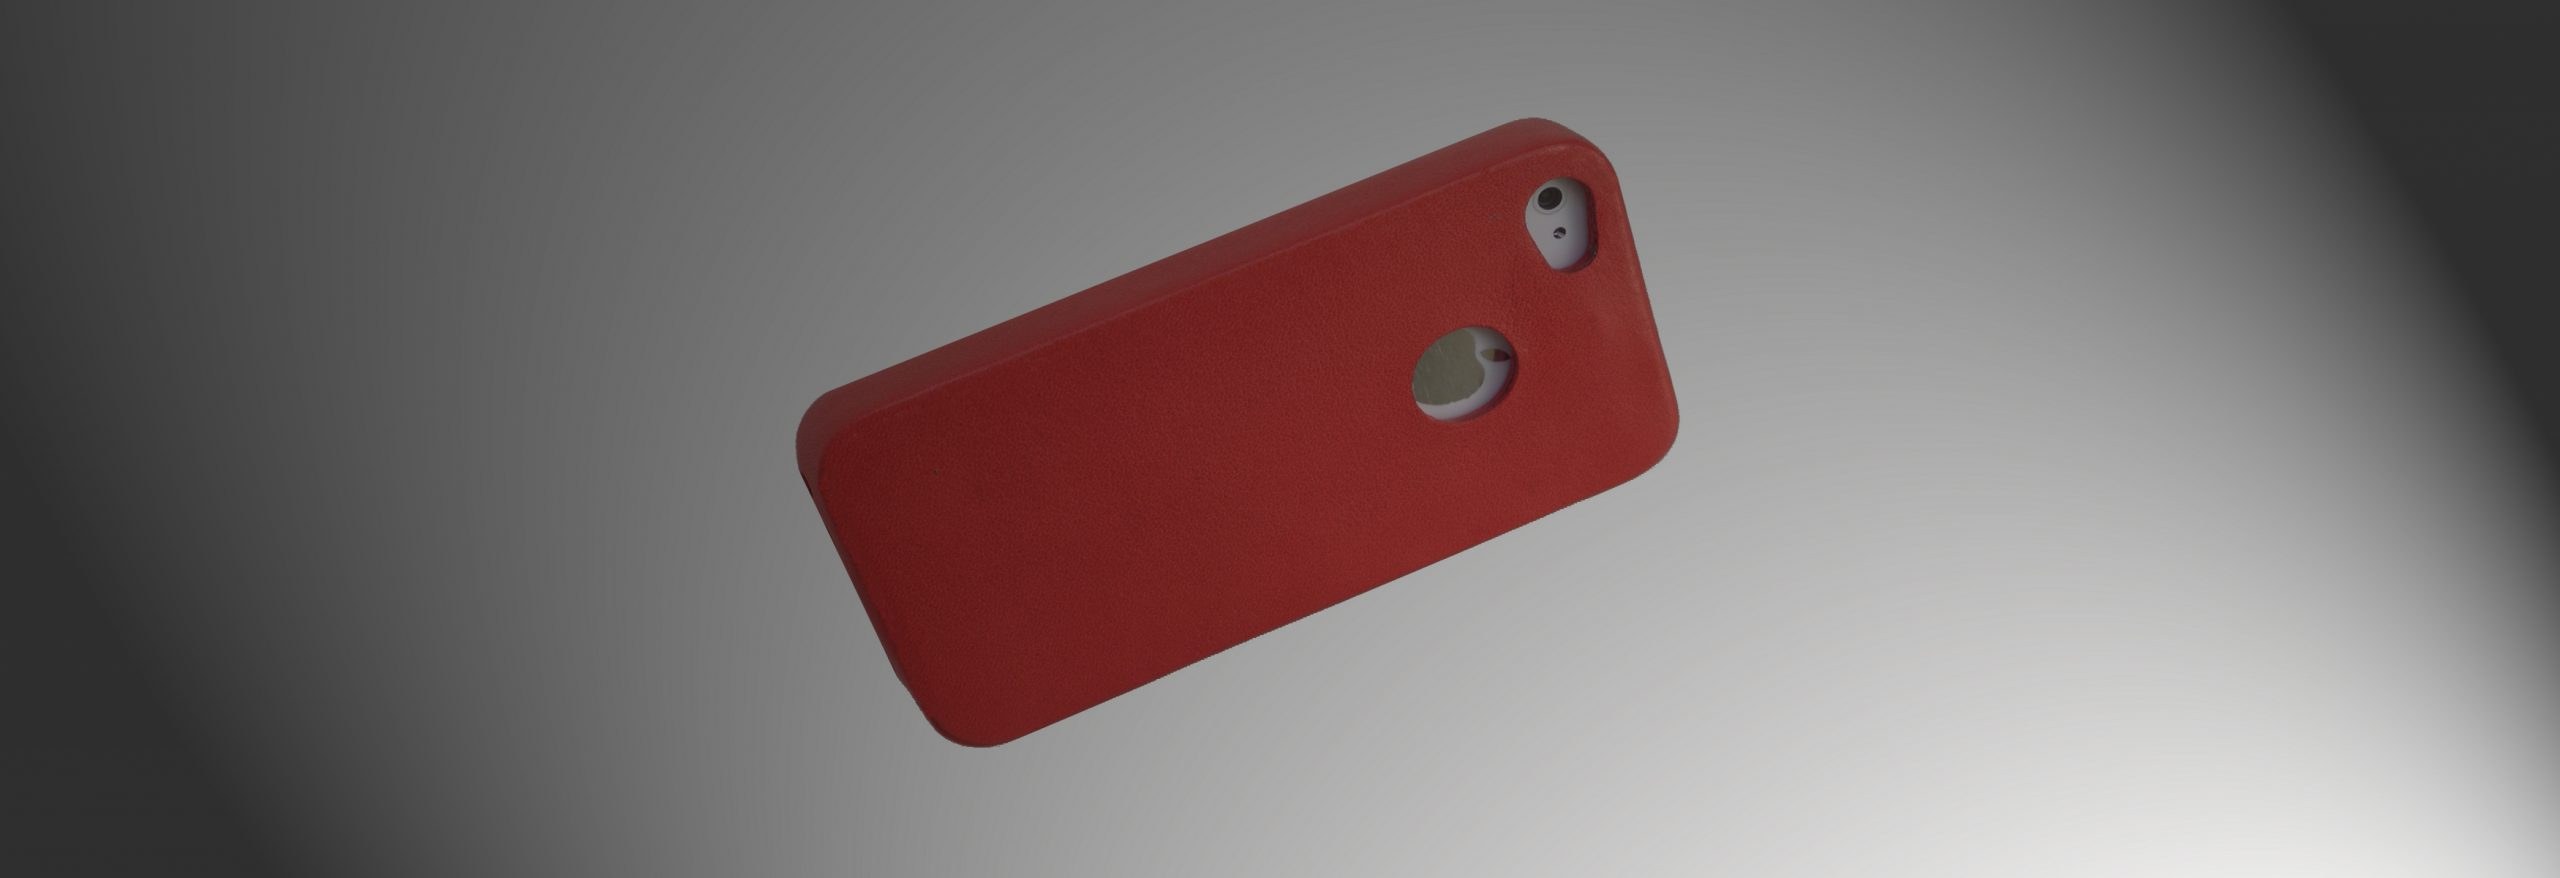 Born the case for the new iPhone 5